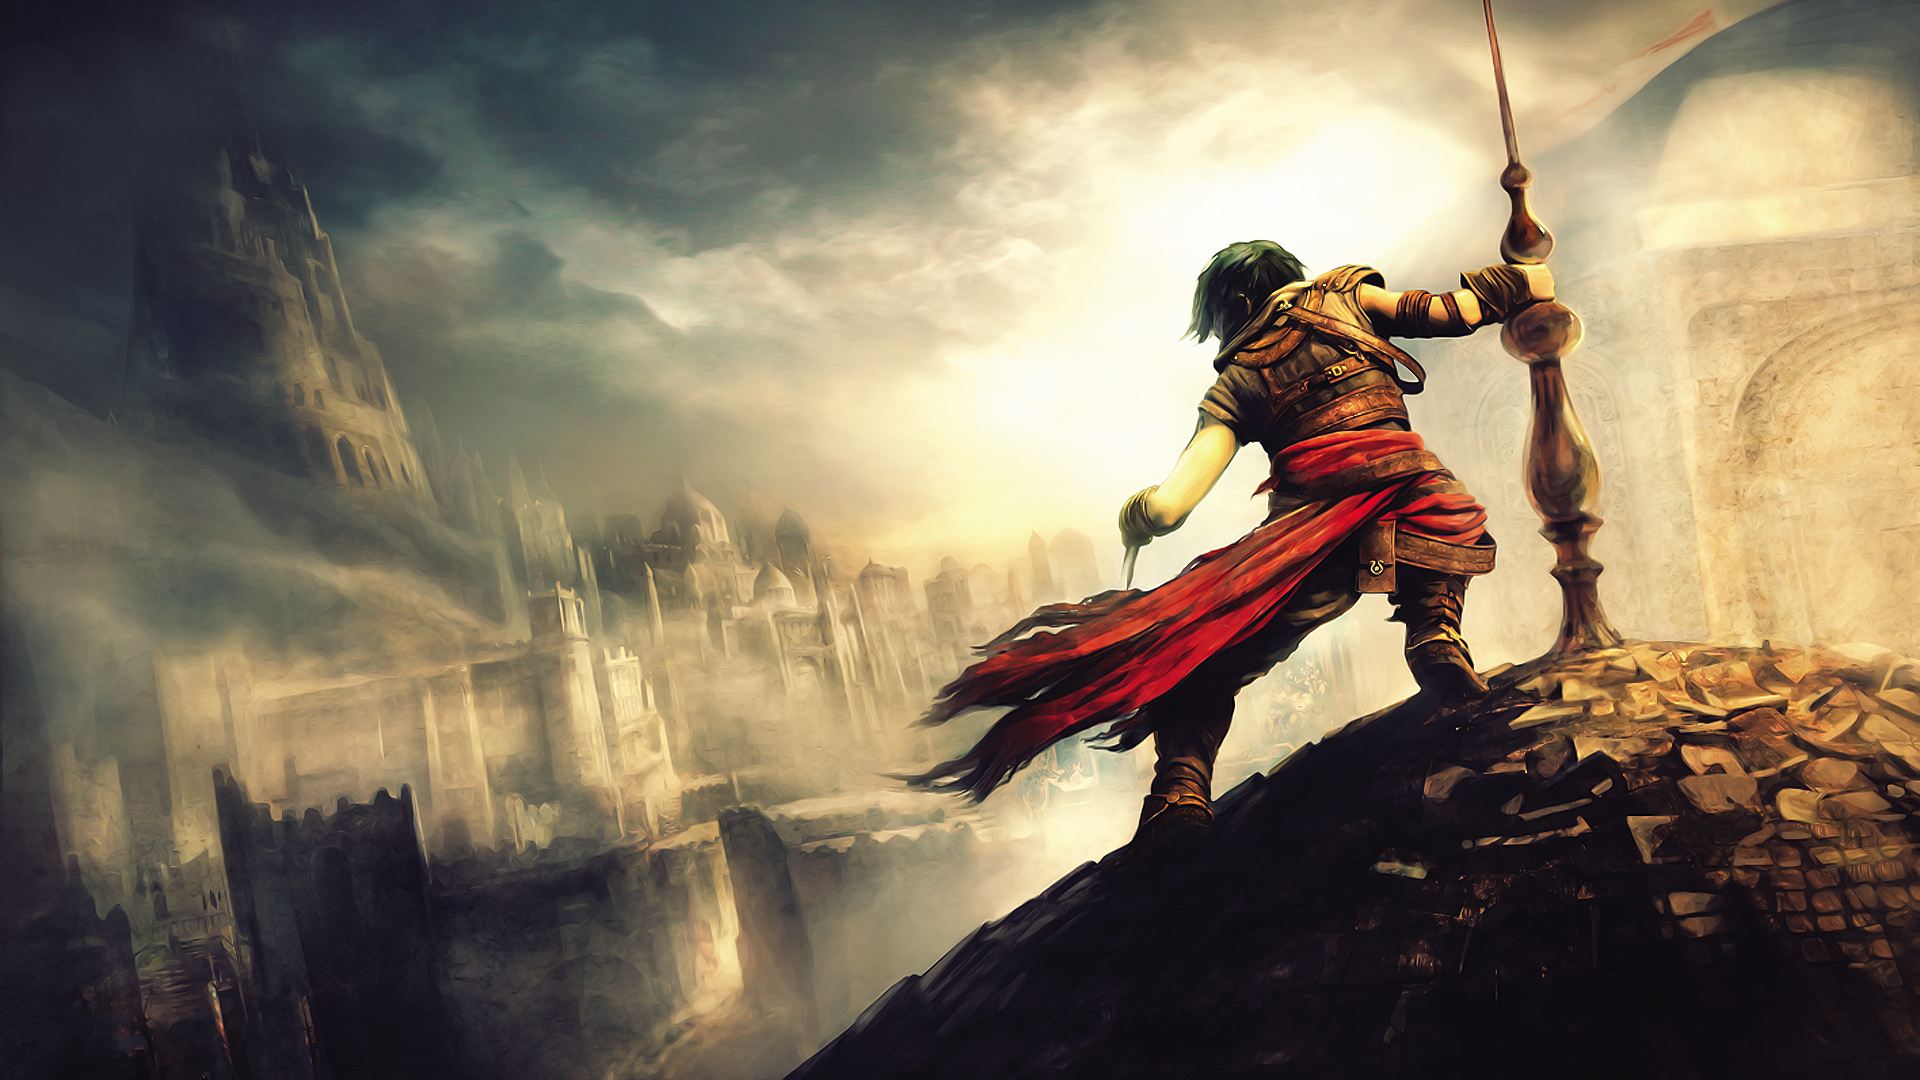 Prince Of Persia Leaked The Gameplay Of A Canceled Project Let S Talk About Videogames